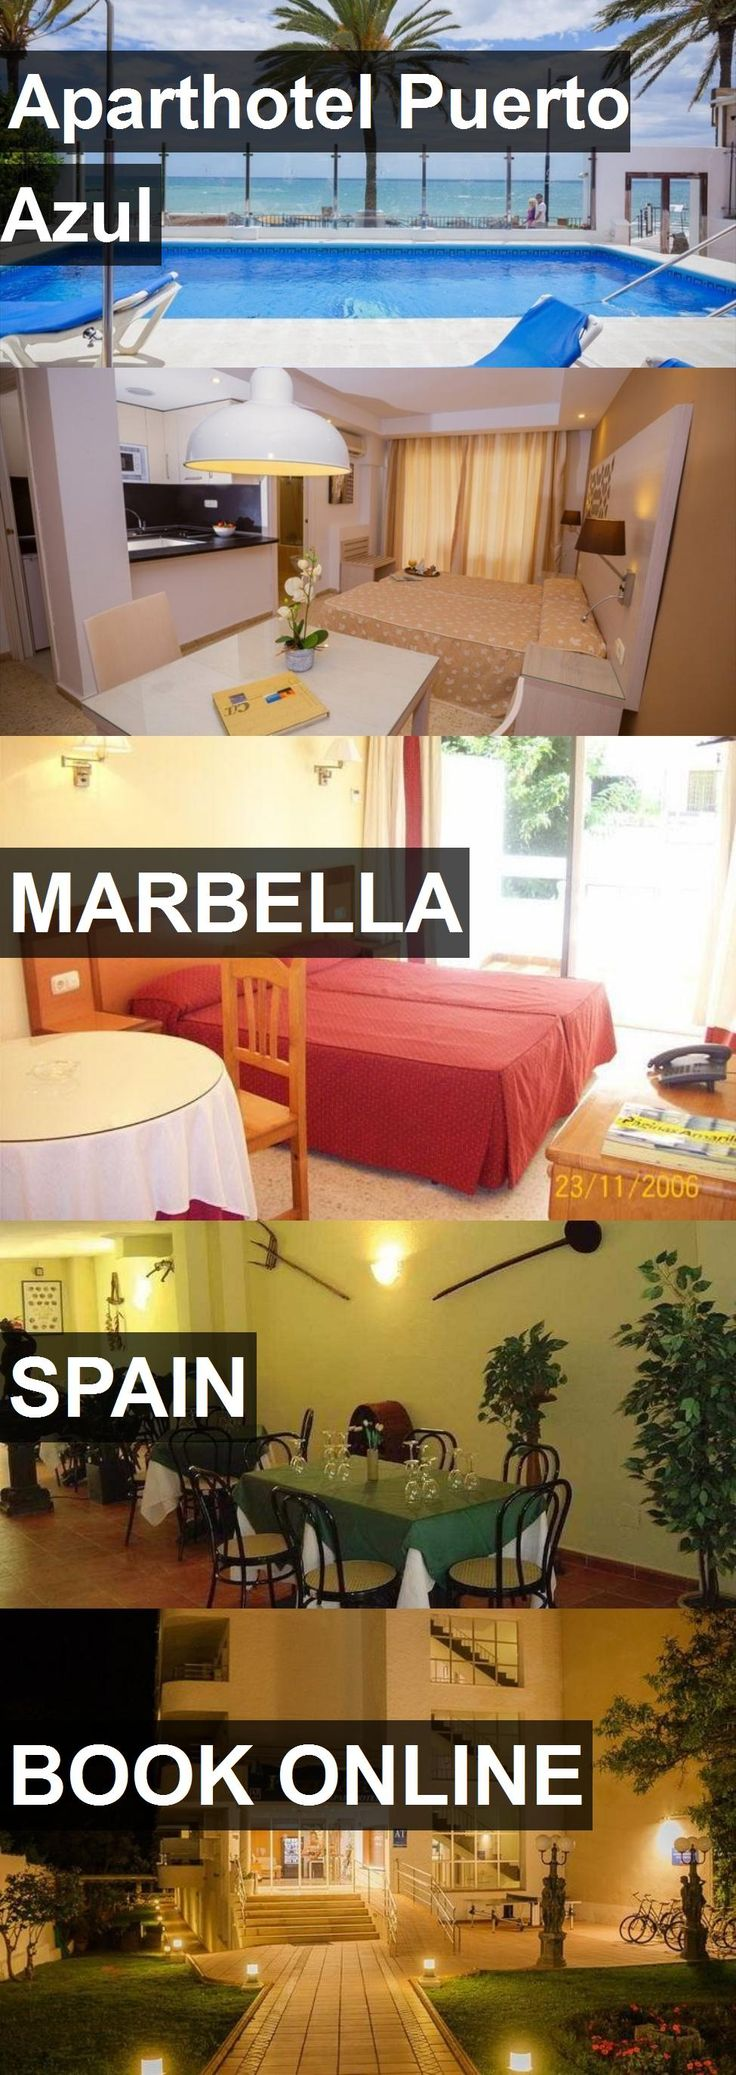 Aparthotel Puerto Azul in Marbella, Spain. For more information, photos, reviews and best prices please follow the link. #Spain #Marbella #travel #vacation #hotel